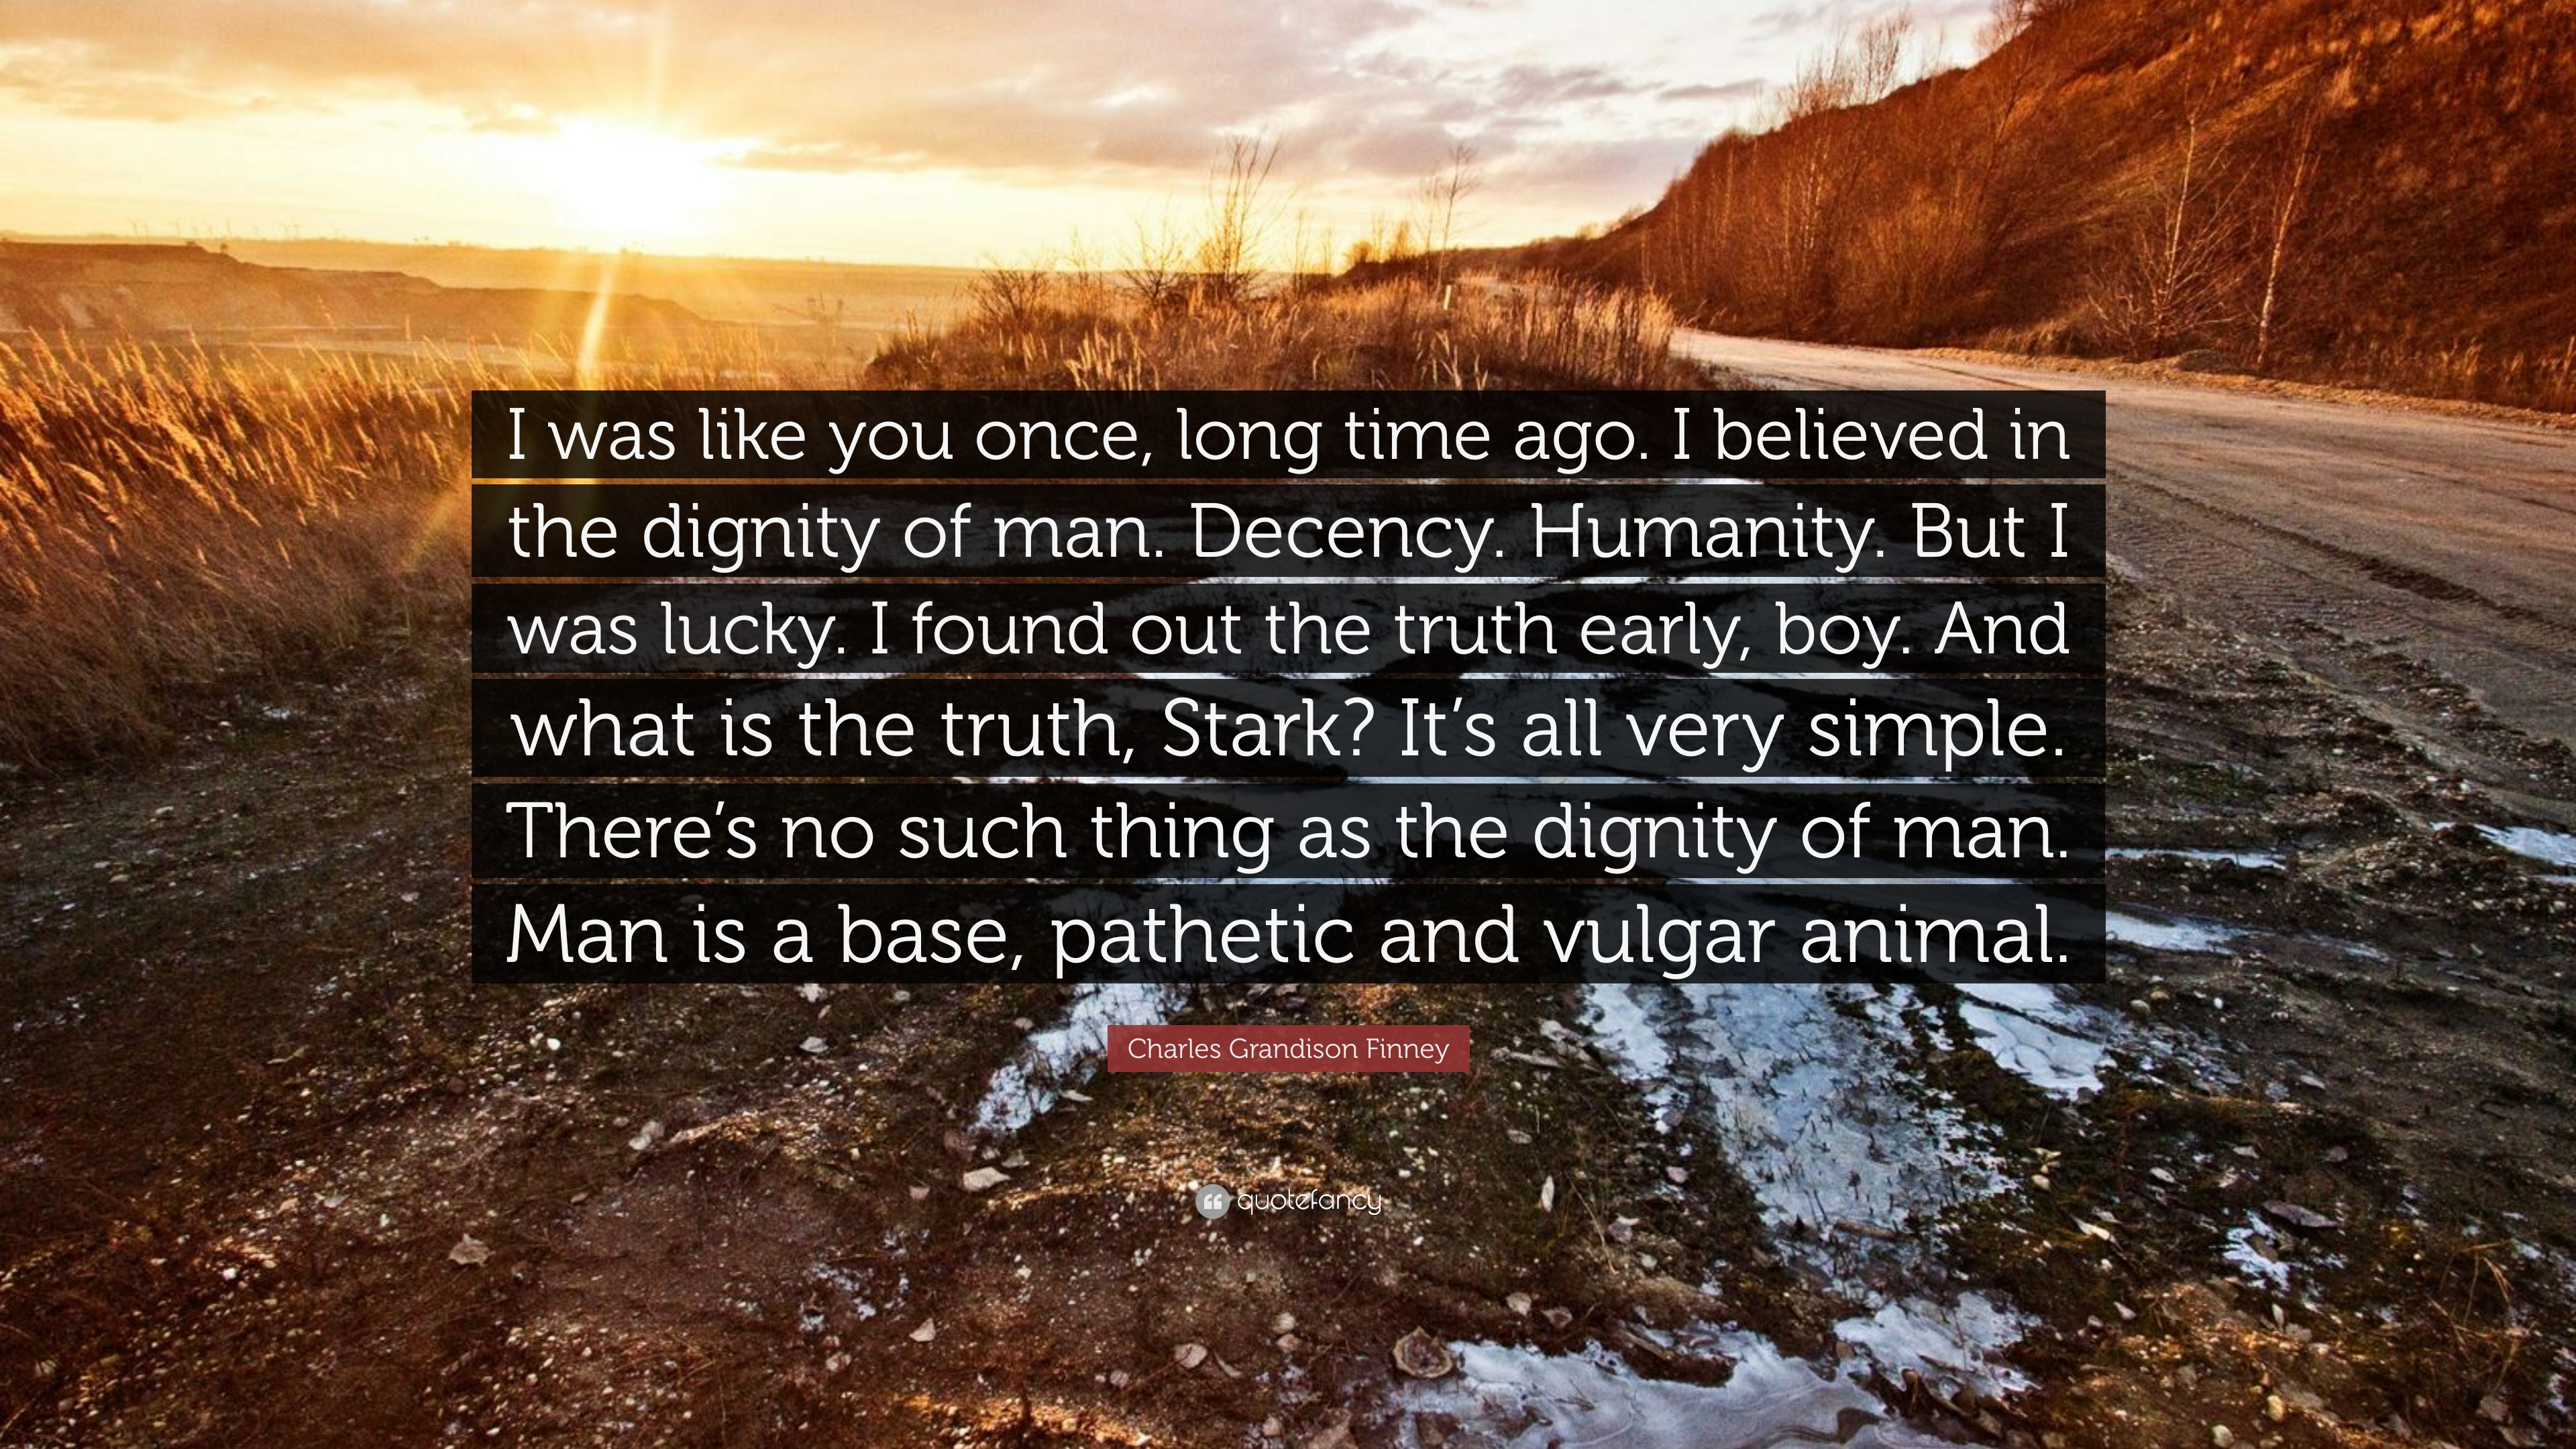 ... out the truth early, boy. And what is the truth, Stark? It's all